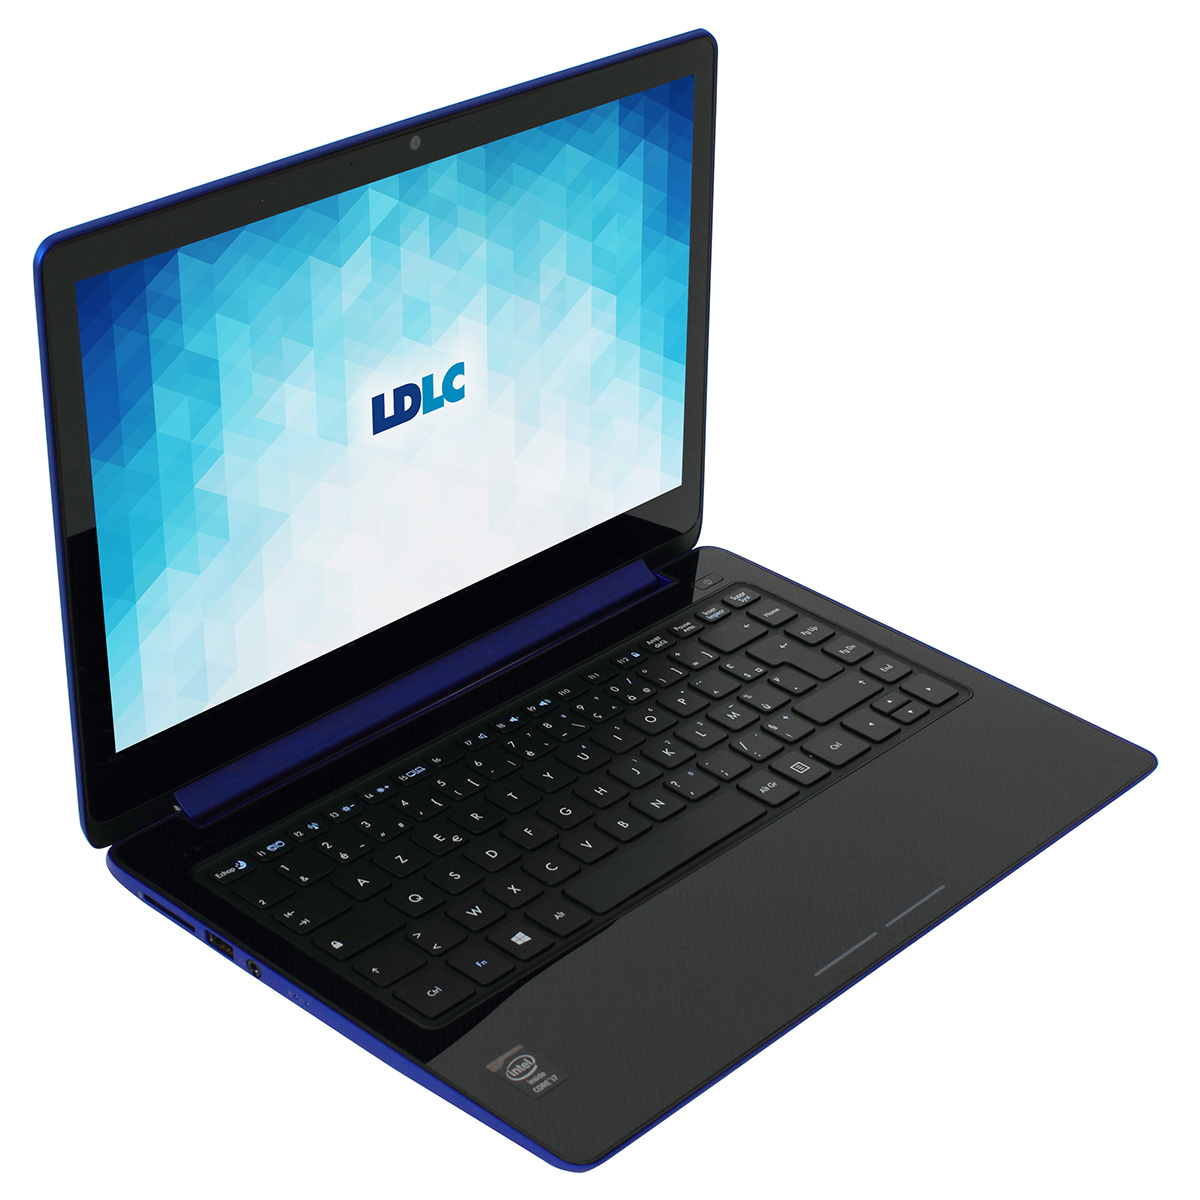 "PC portable LDLC Iris FB1-I3-4-S1 UltraSlim Intel Core i3-4010U 4 Go SSD 128 Go 13.3"" LED Full HD Wi-Fi N/Bluetooth 4.0 Webcam (sans OS)"